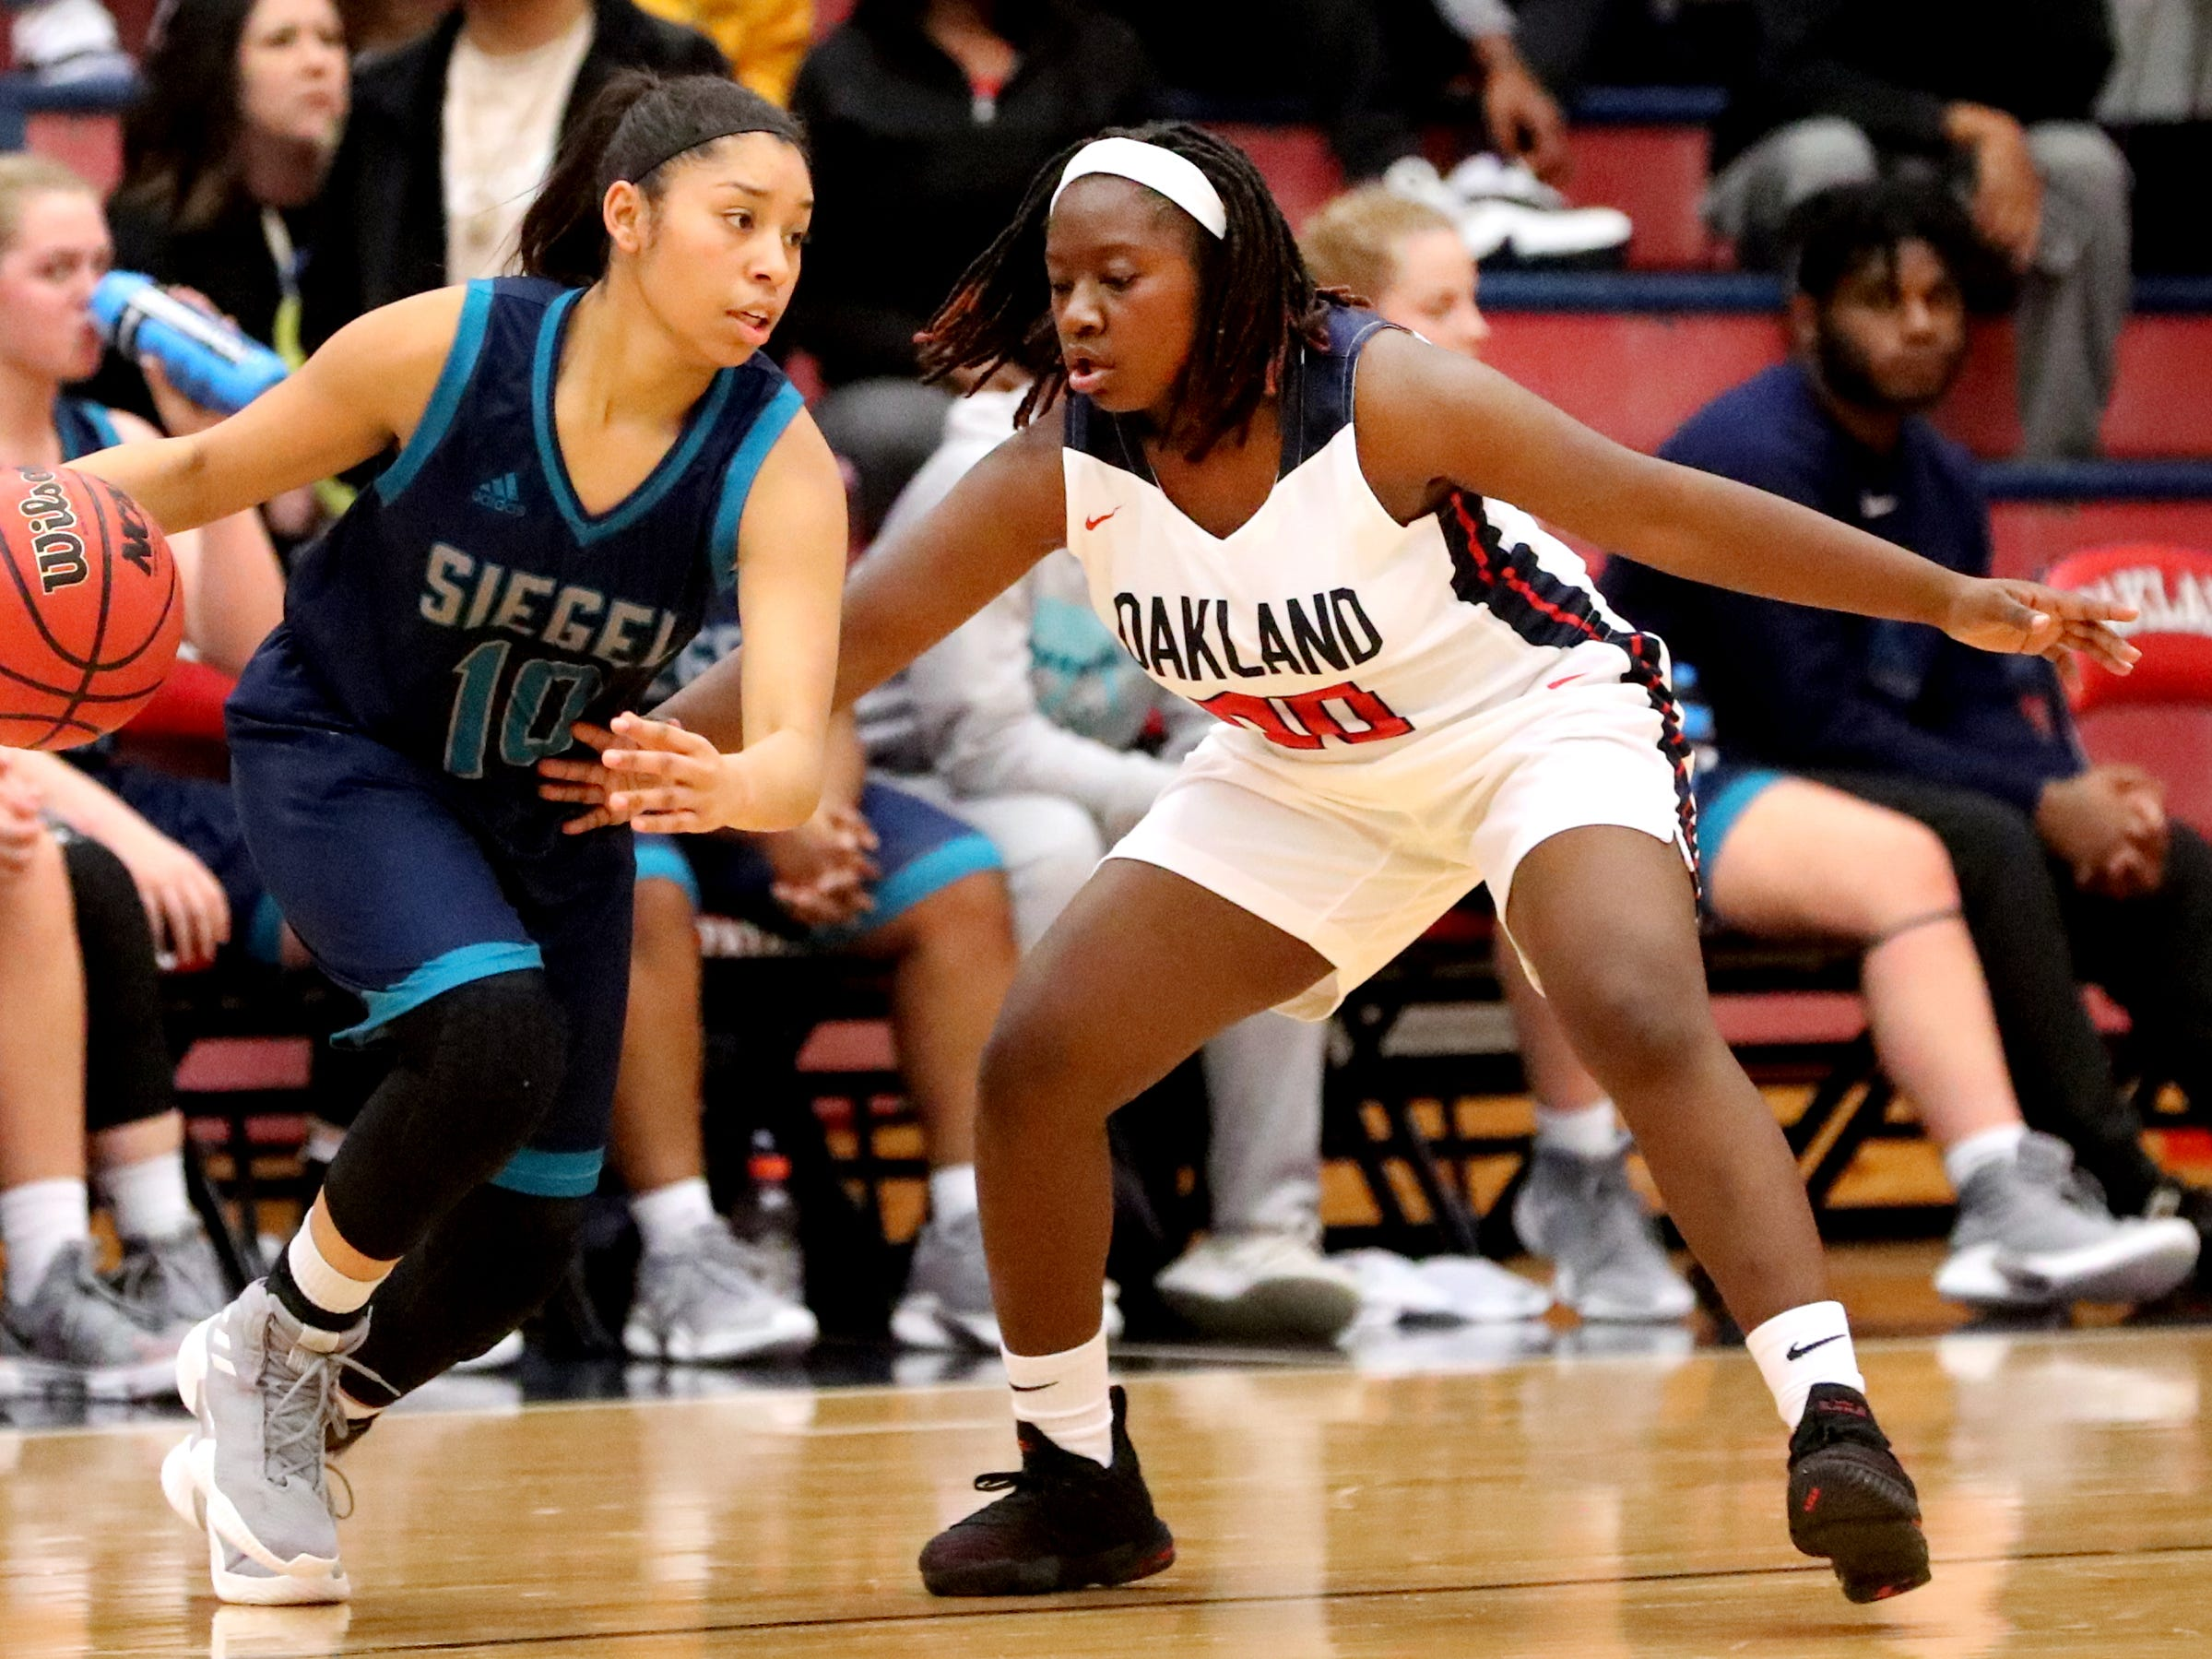 Siegel's Monica Peralta (10) moves the ball around the court as Oakland's Terianna Covington (00) guards her during the game at Oakland on Tuesday, Dec.. 4, 2018.